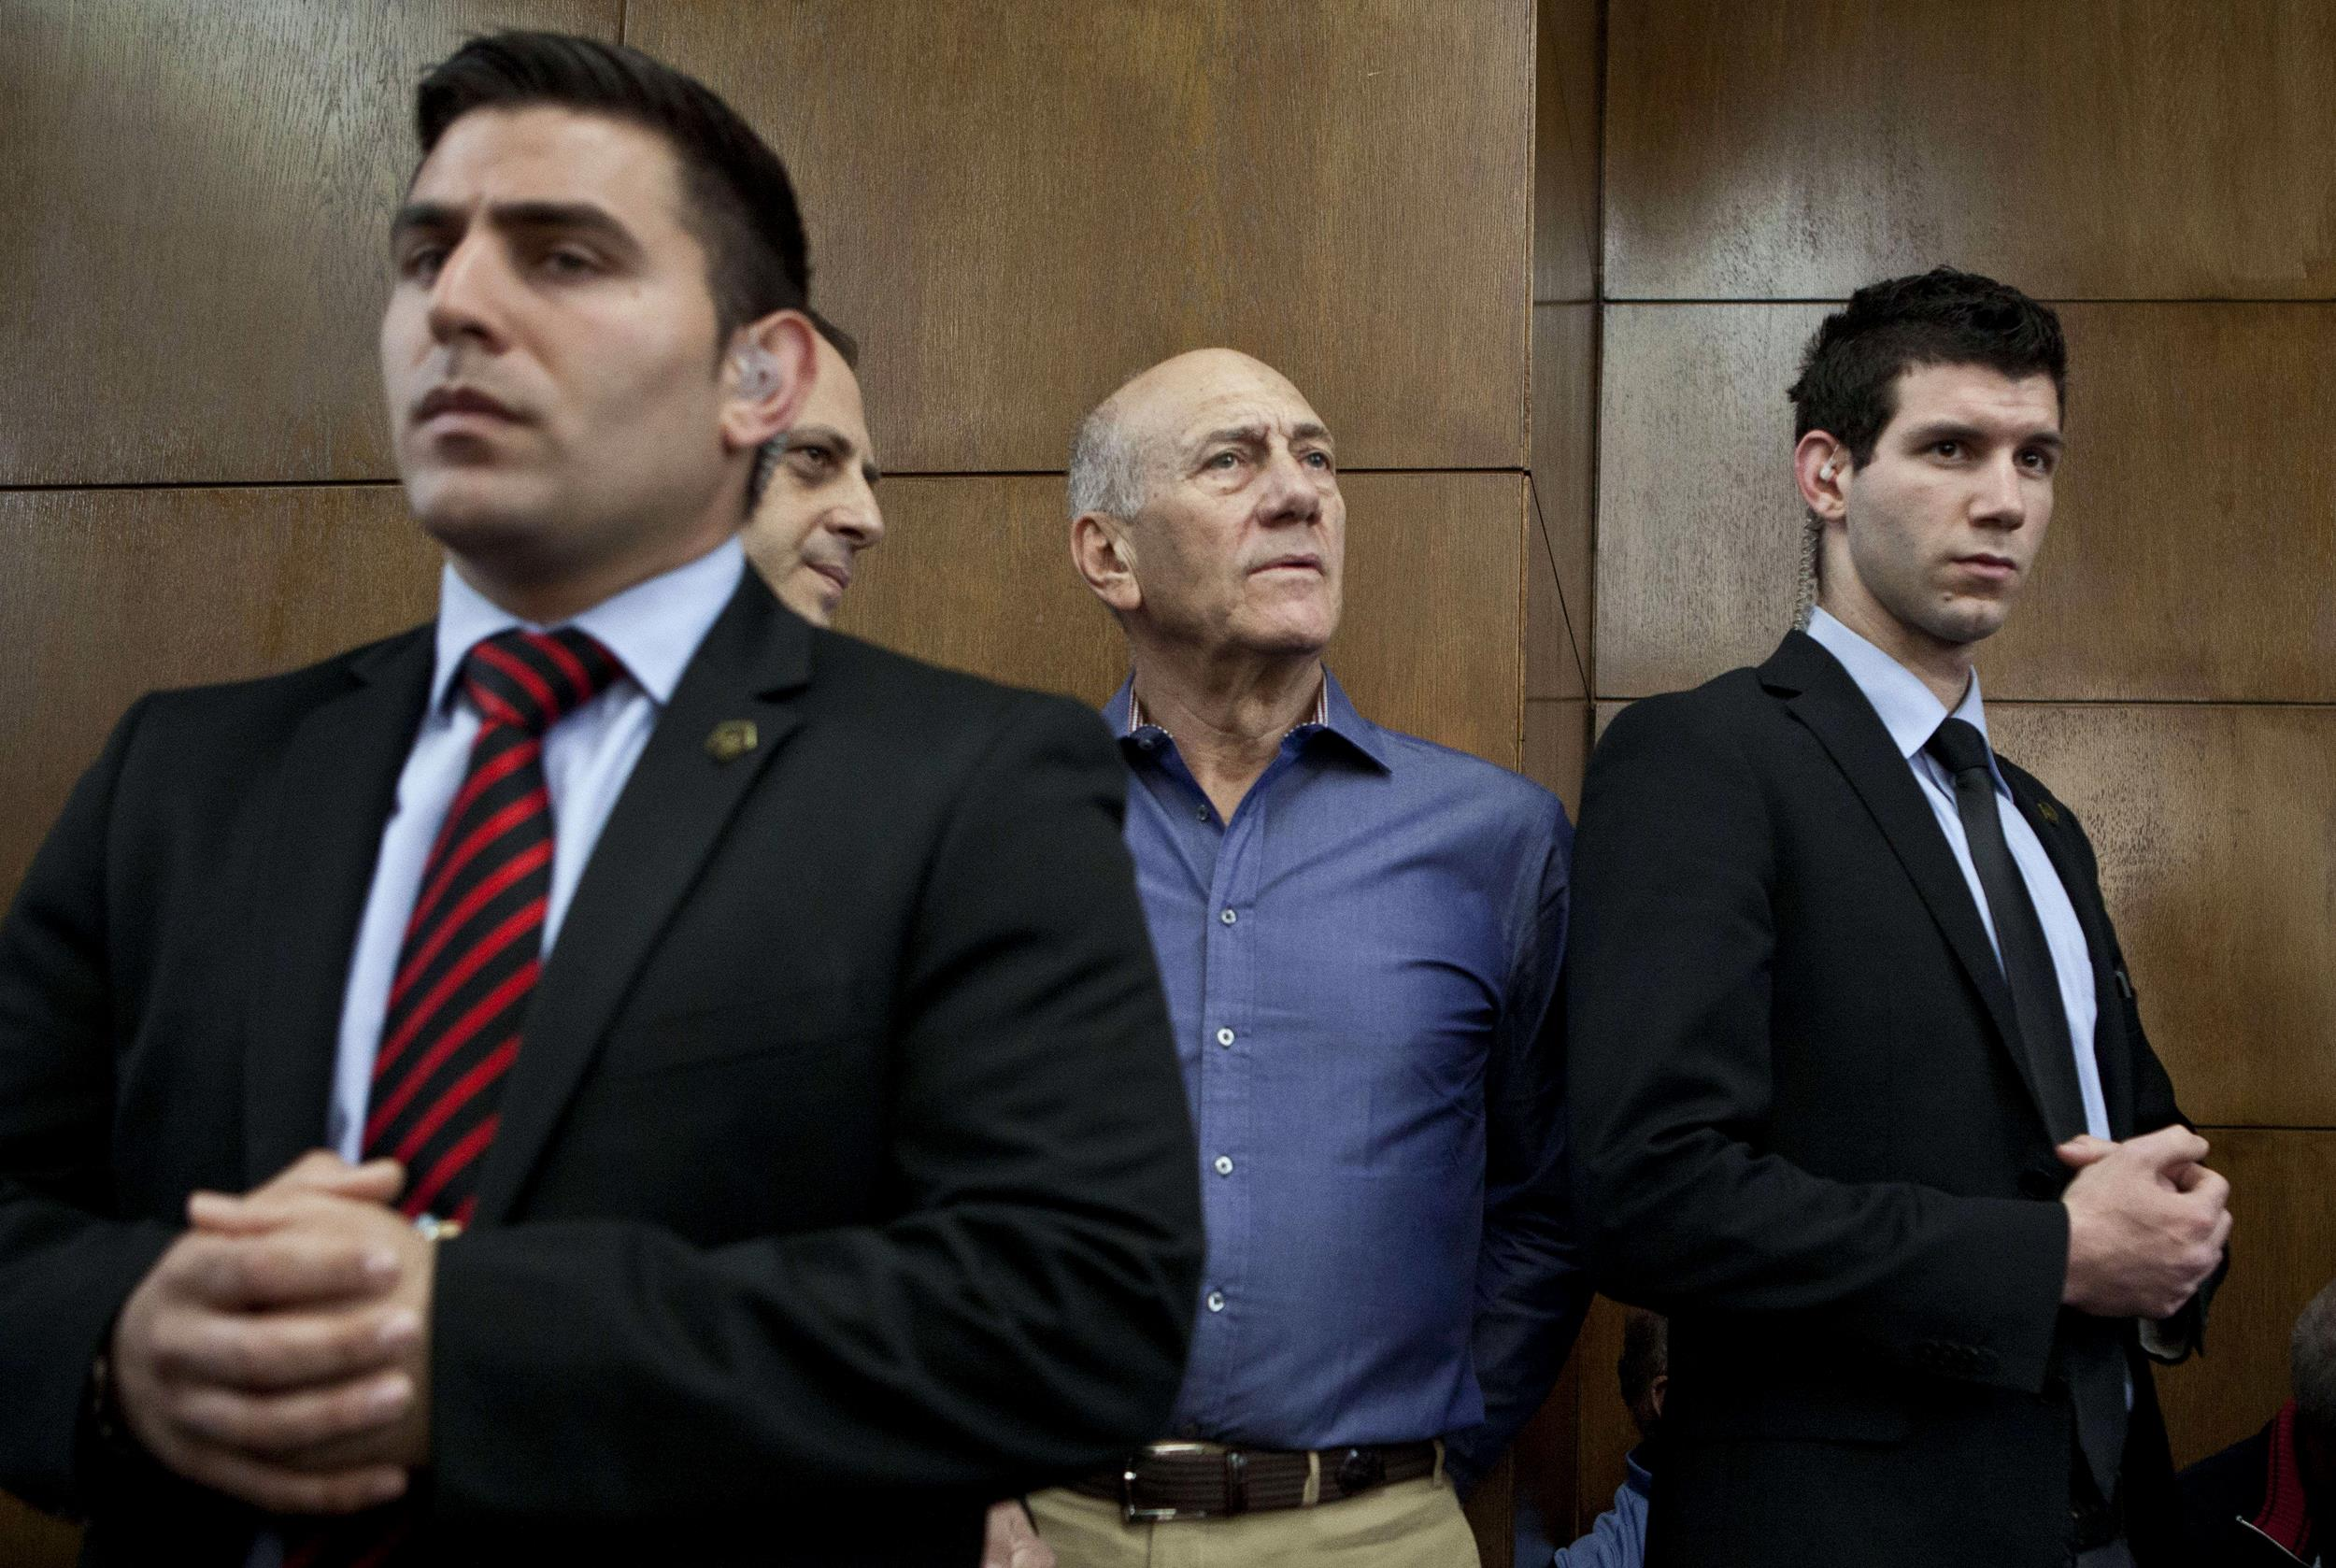 Image: Former Israeli Prime Minister Ehud Olmert, center, waits before the start of a hearing in his trial for corruption